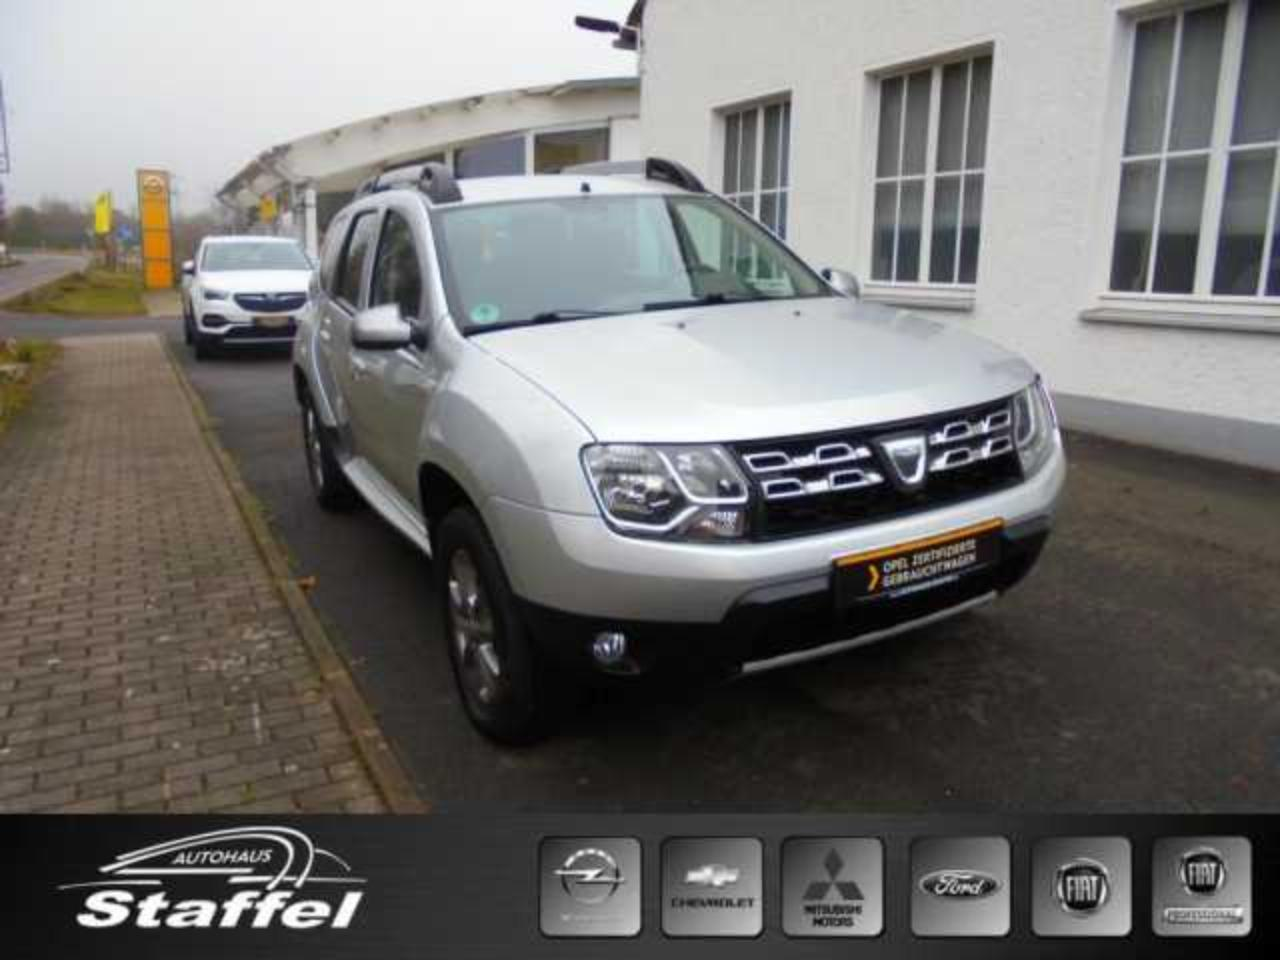 Dacia Duster 1.6 16V 105 4x4 Celebration